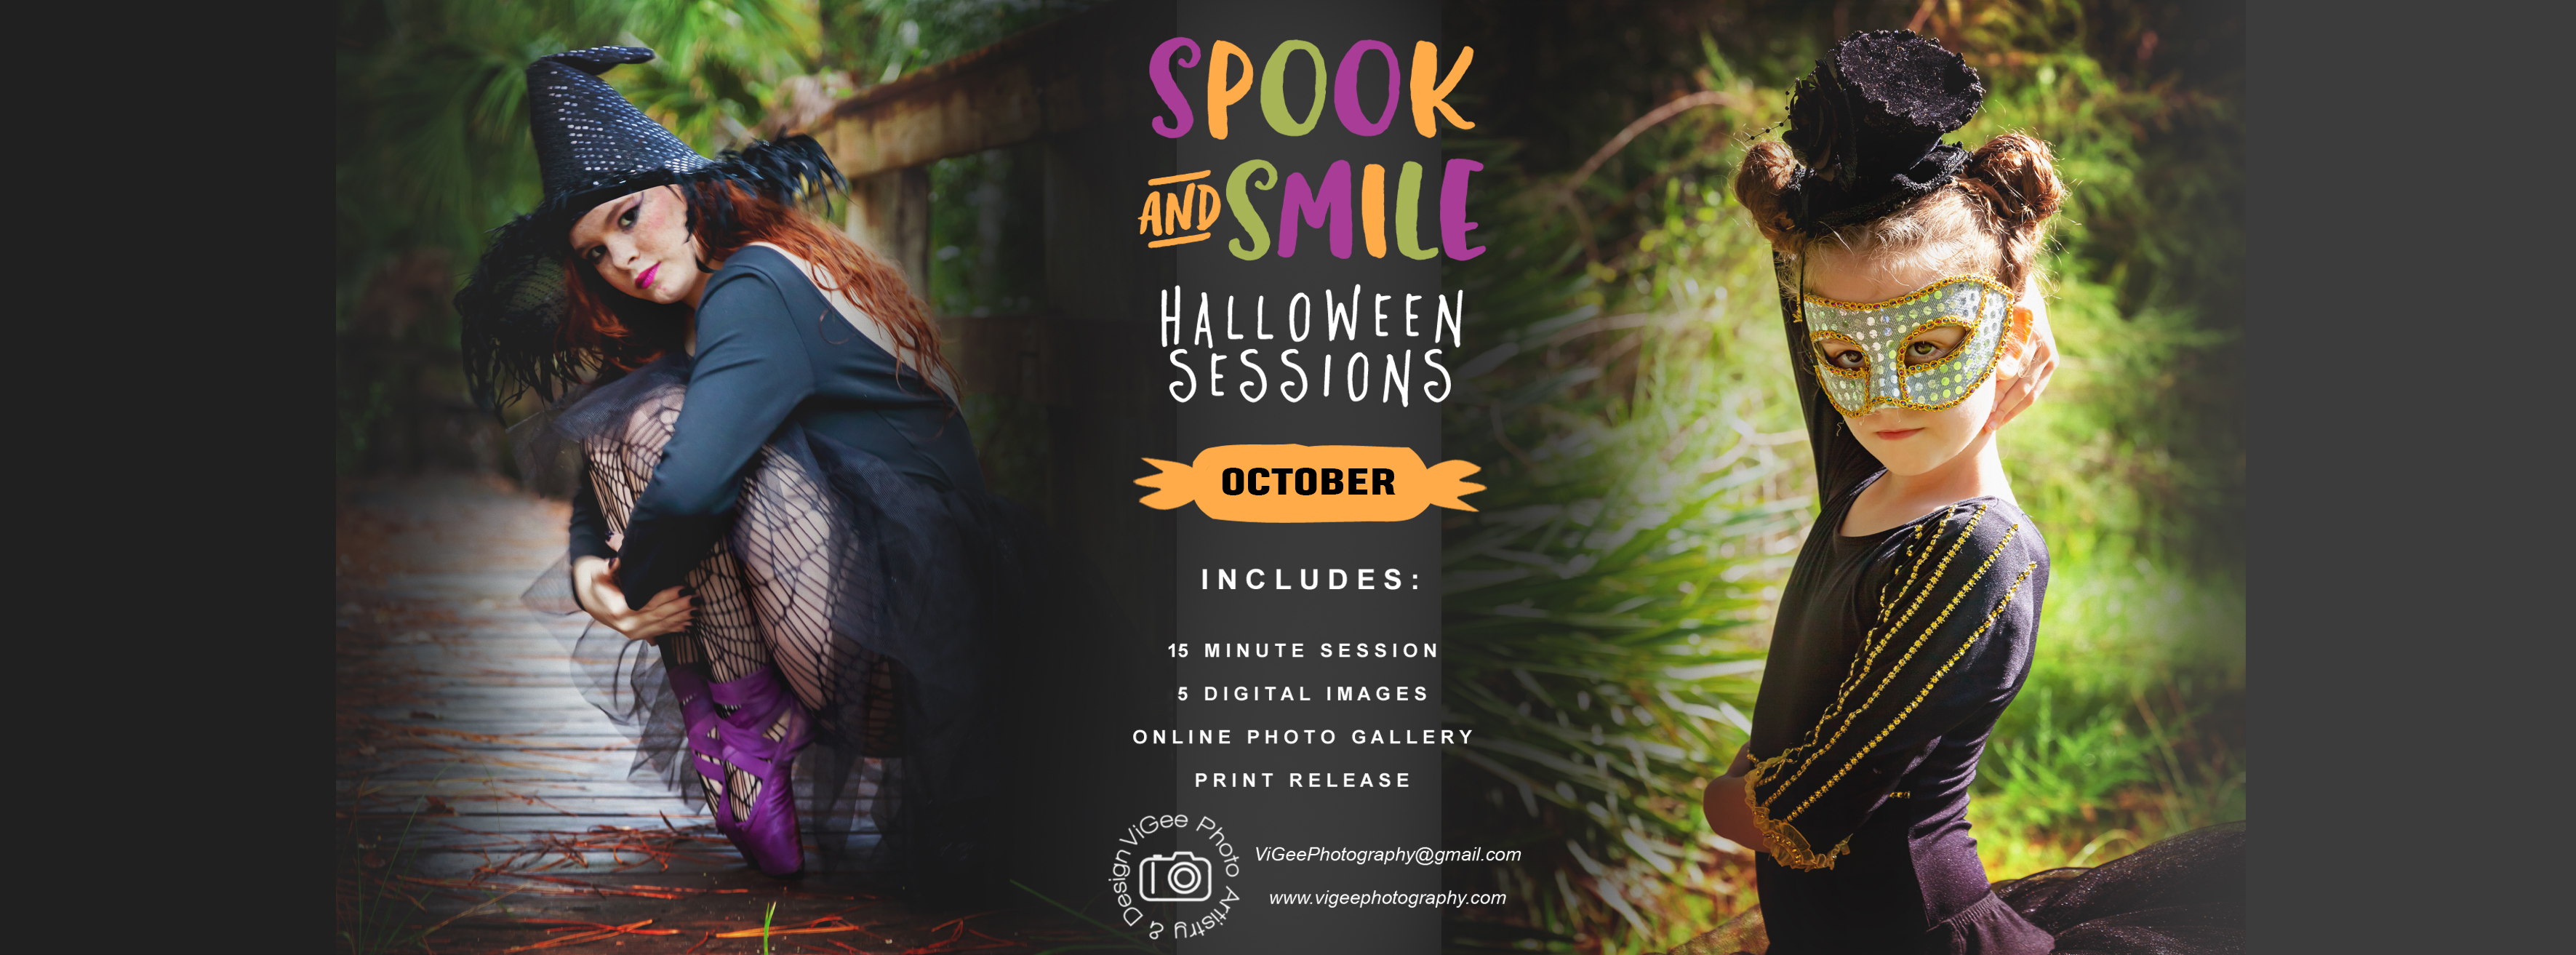 Spook and Smile